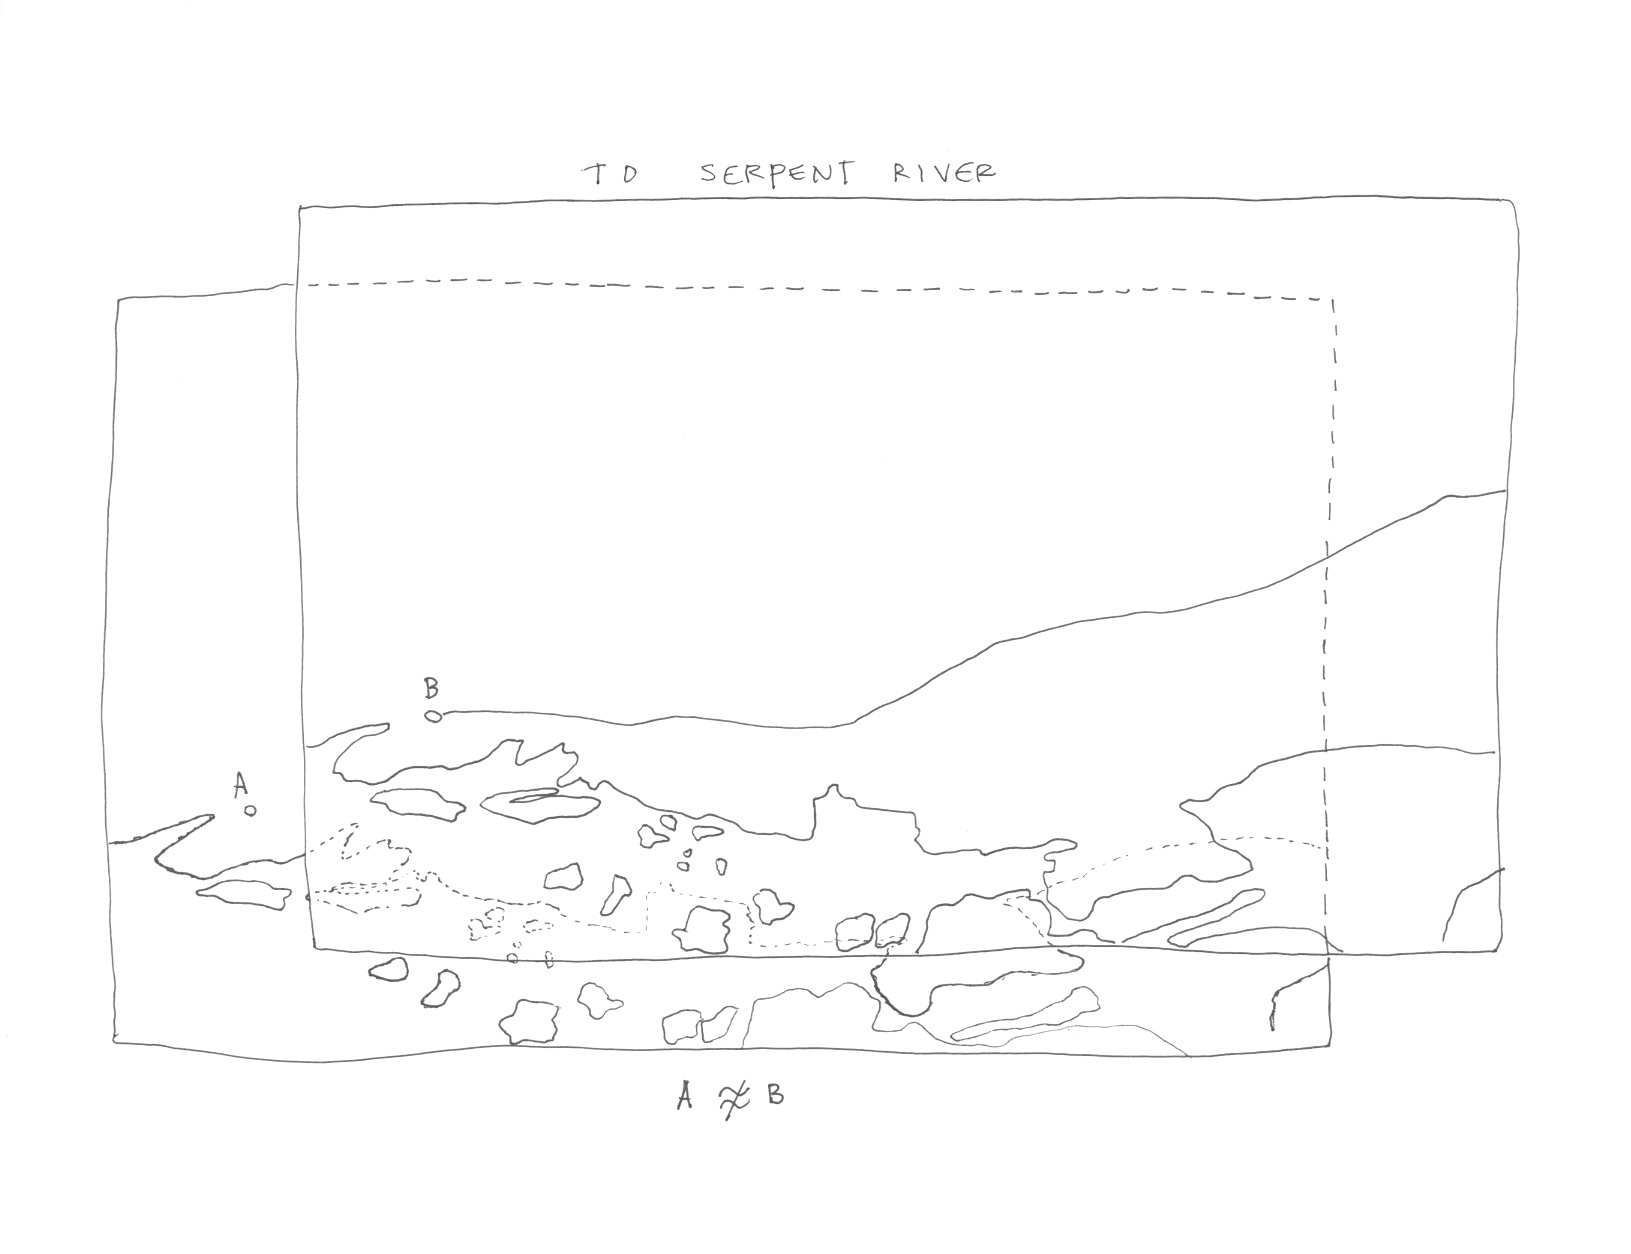 """Suzanne Morrissette, 2011,  To Serpent River , ink on paper, 11"""" x 8.5""""."""